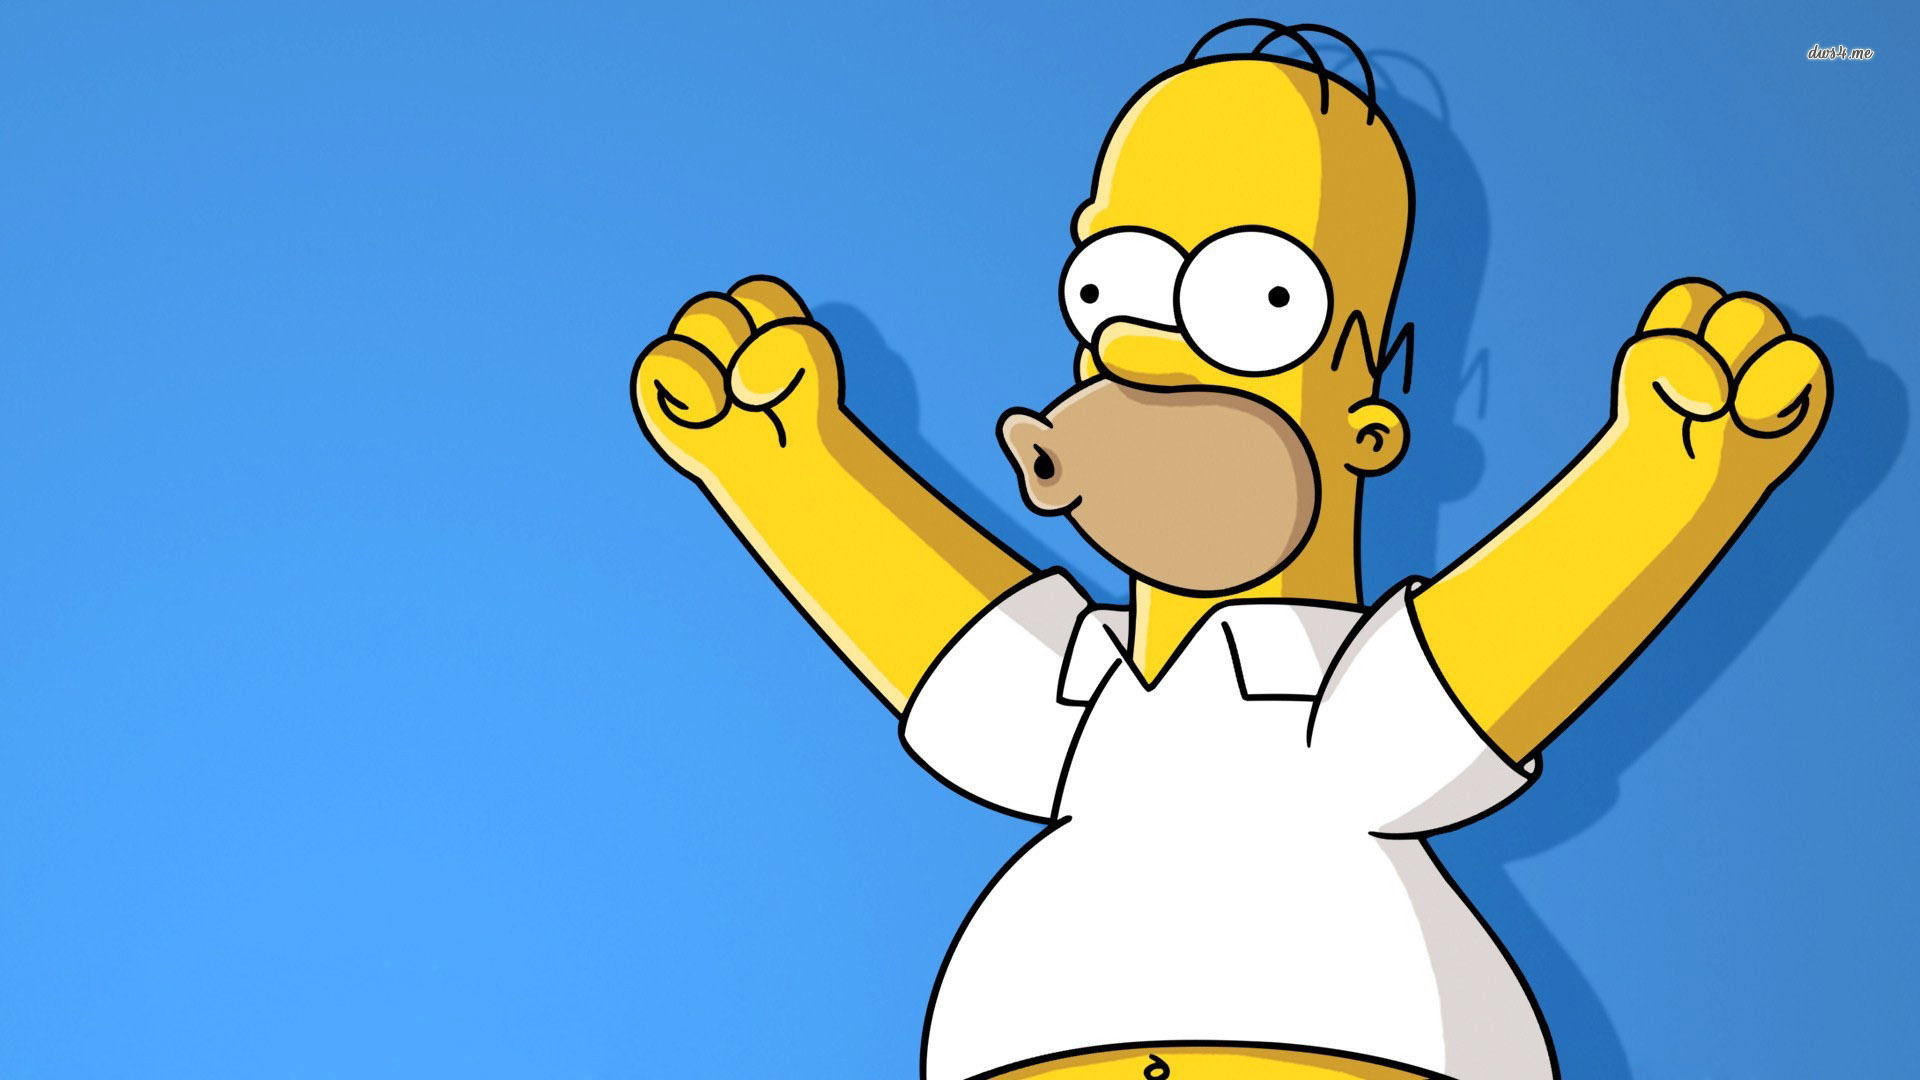 Cool Homer Simpson Wallpaper